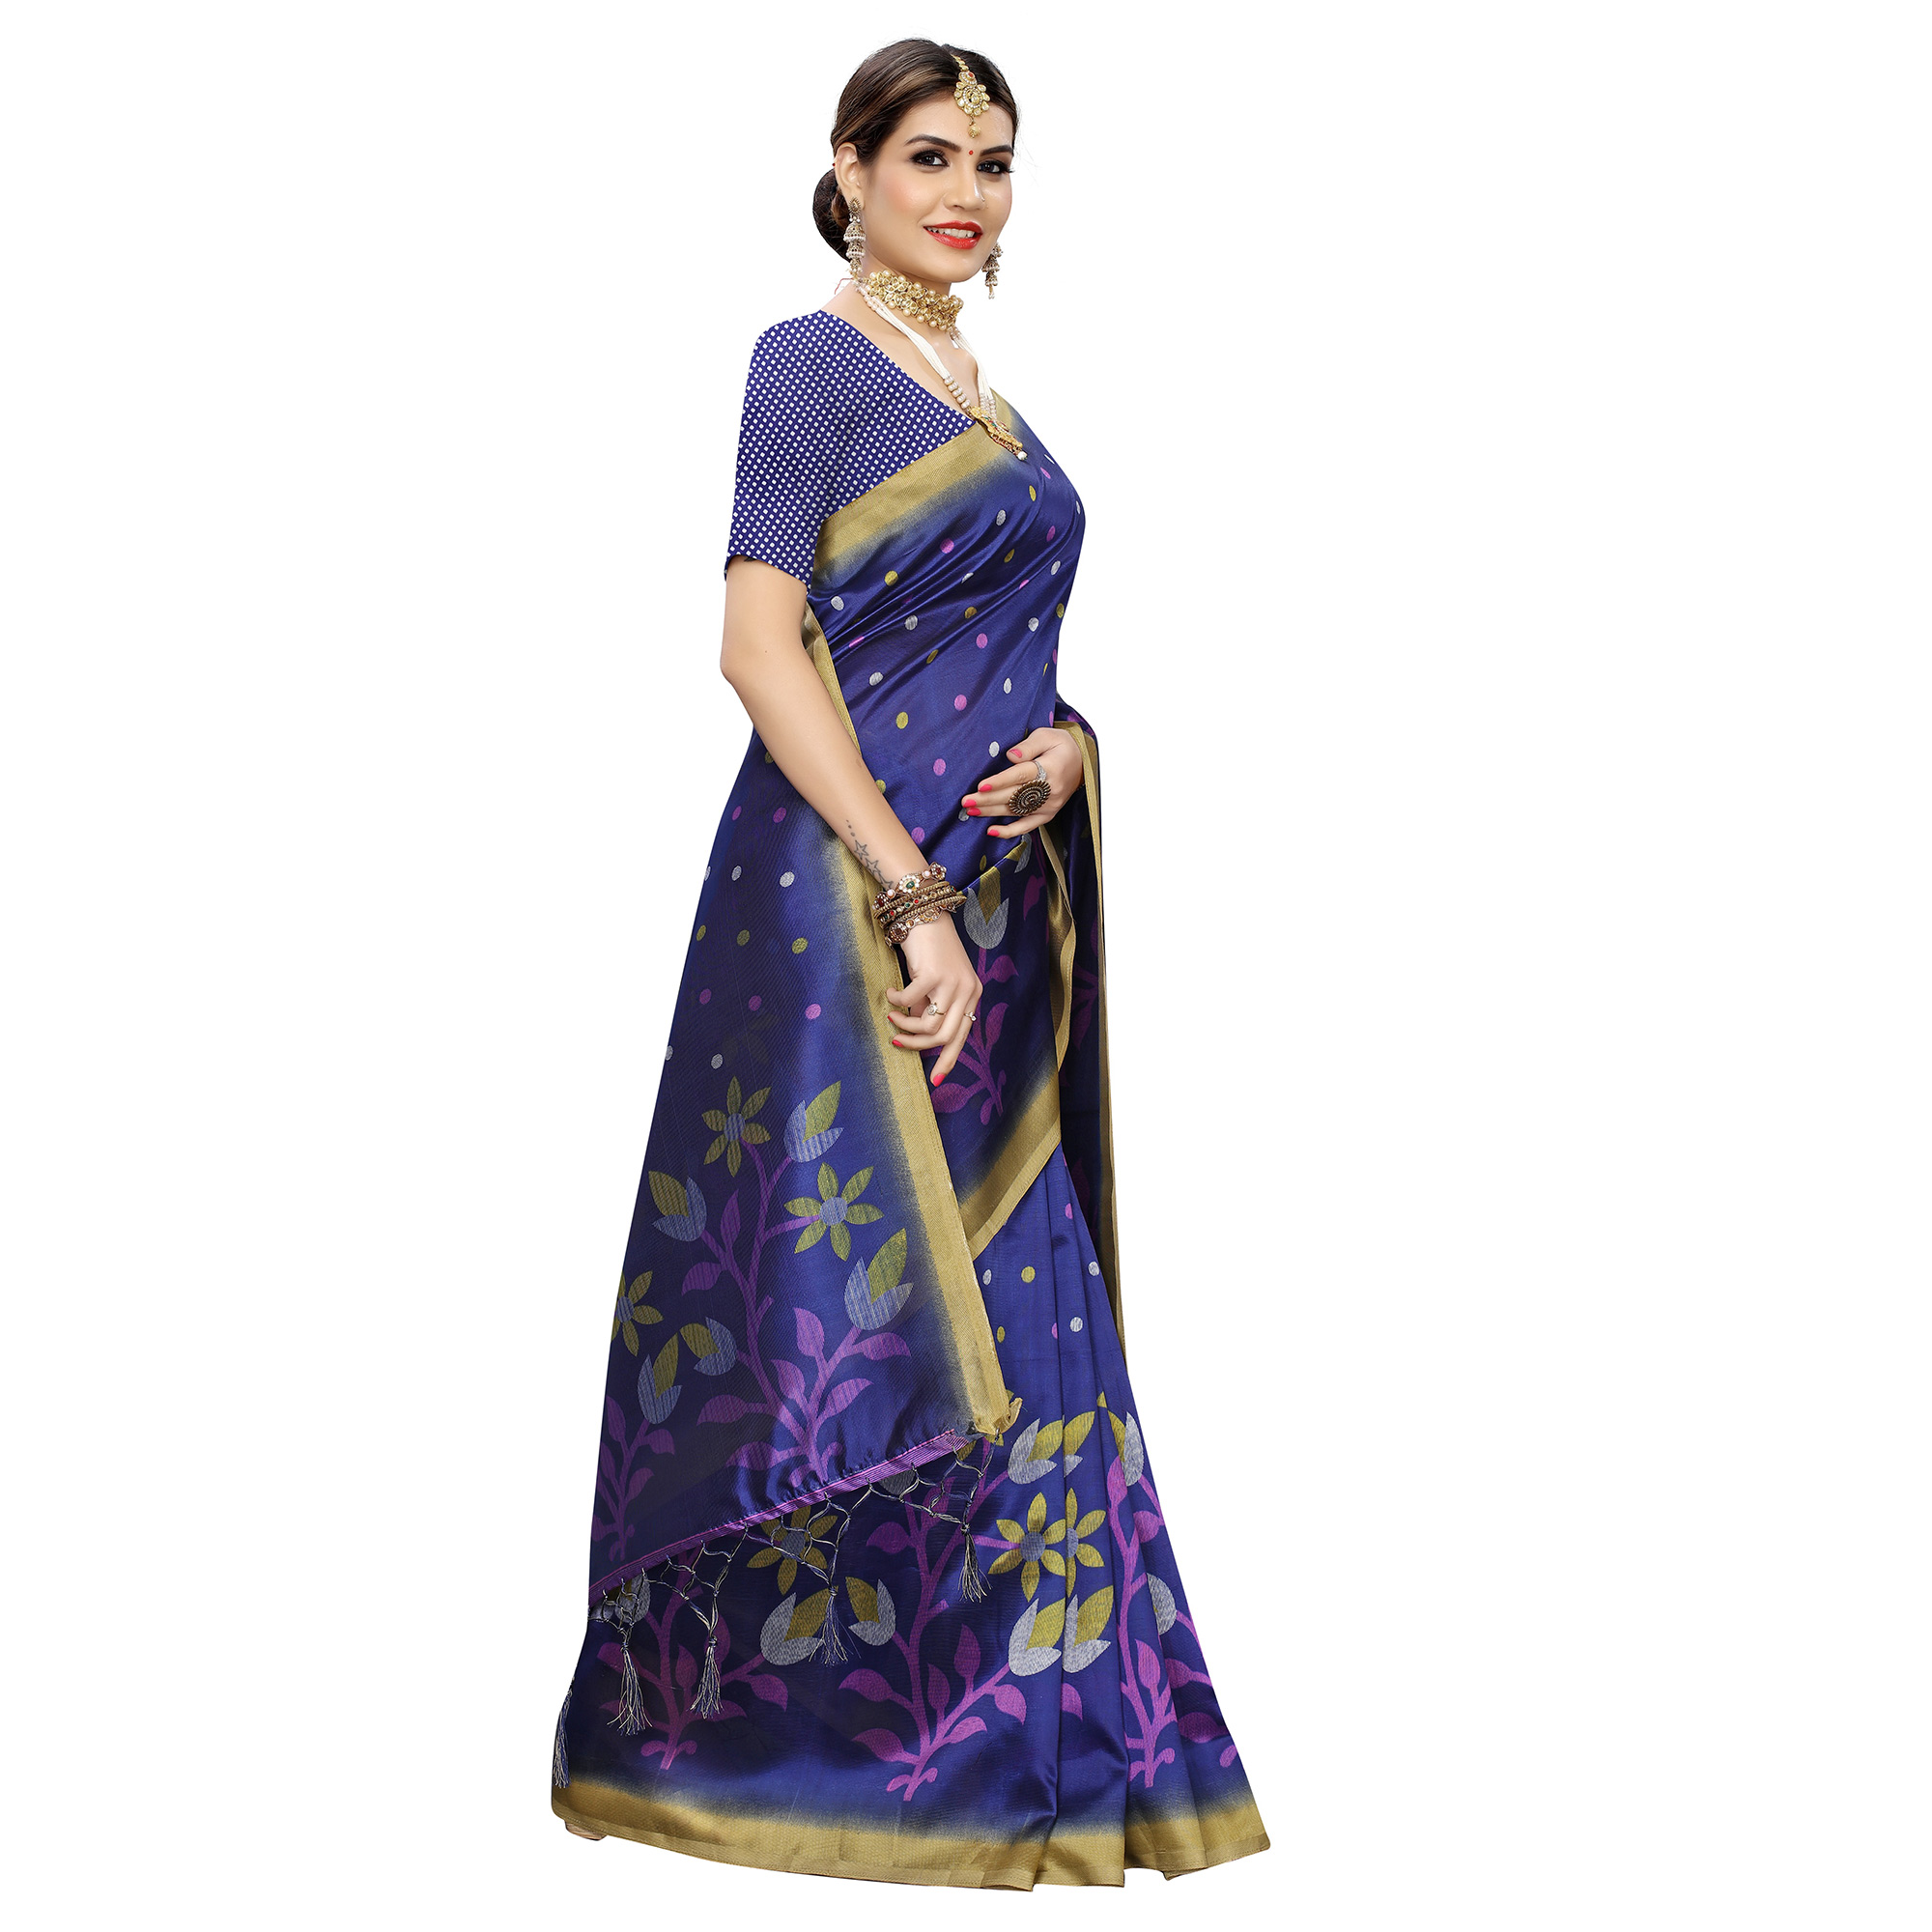 Pleasant Royal Blue Colored Festive Wear Floral Printed Art Silk Saree With Tassel